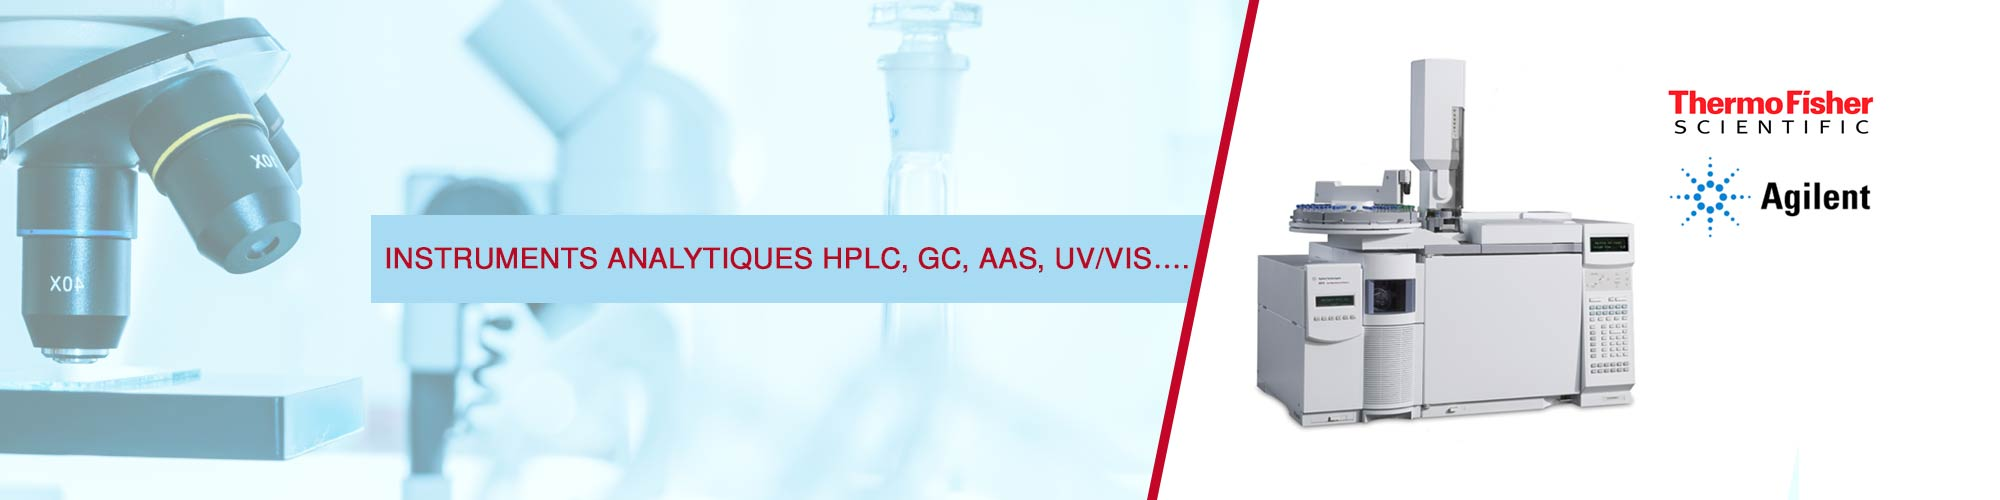 Instruments Analytiques HPLC, GC, AAS, Uv/Vis